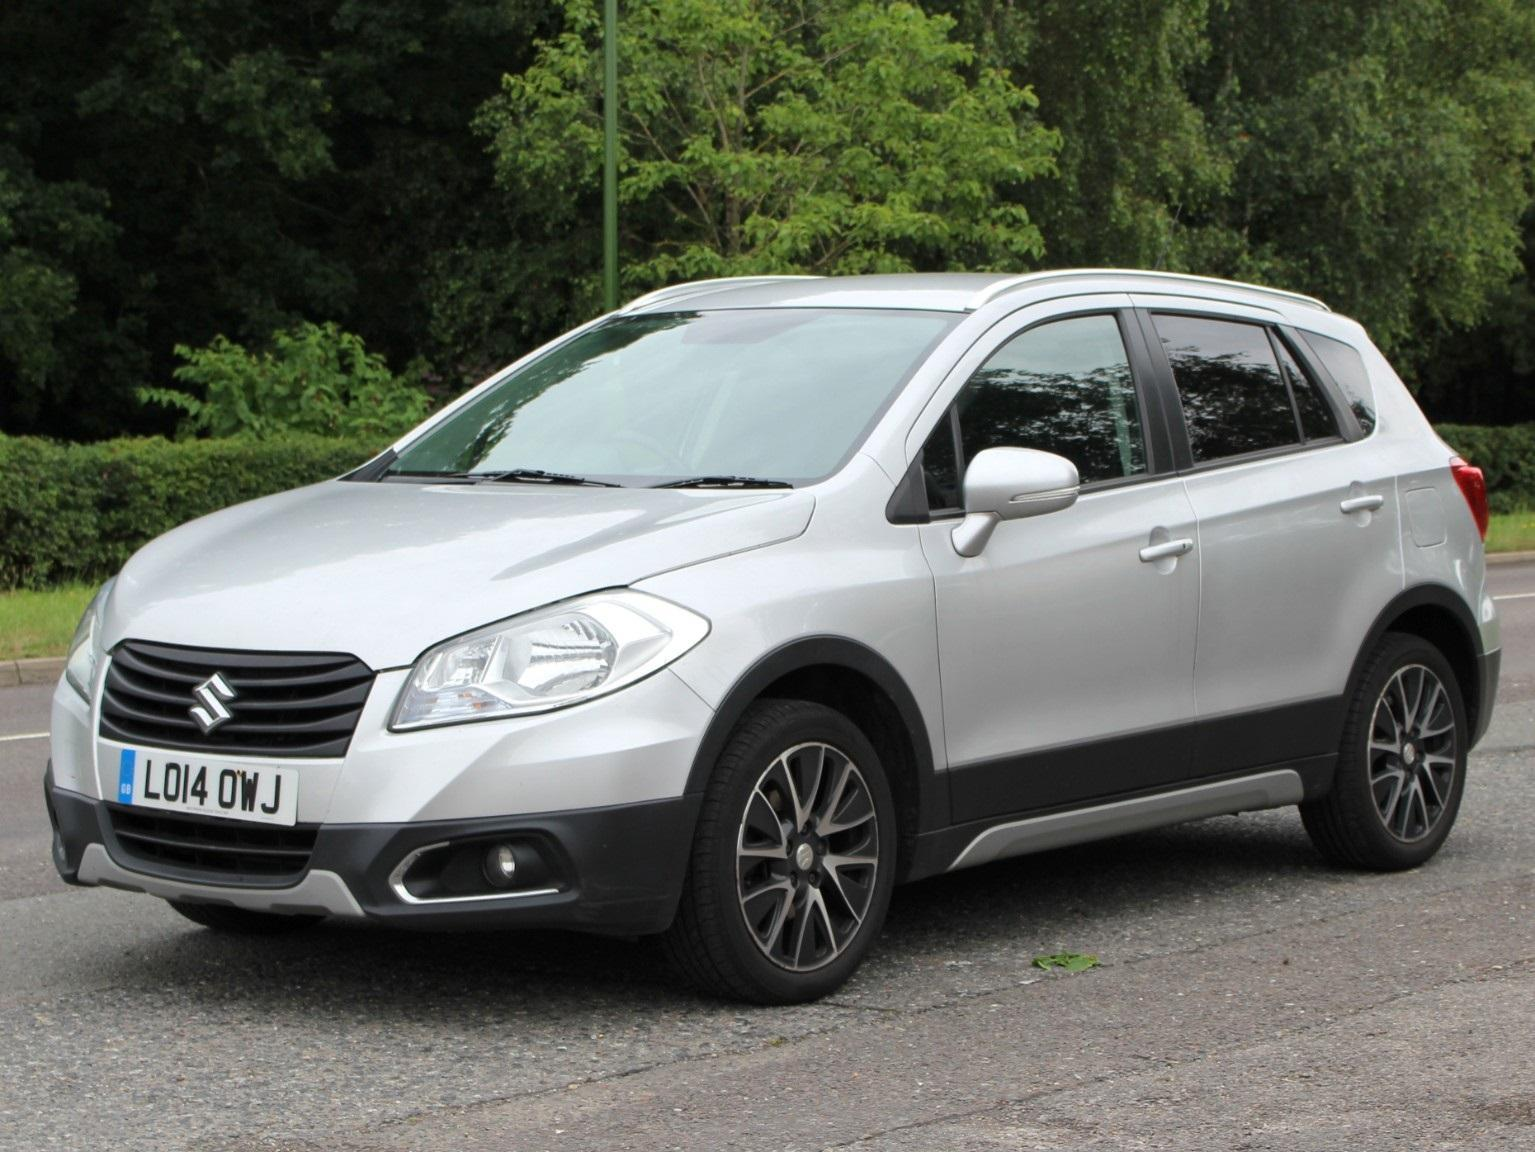 Suzuki SX4 2014 in Hassocks - Expired | Friday-Ad